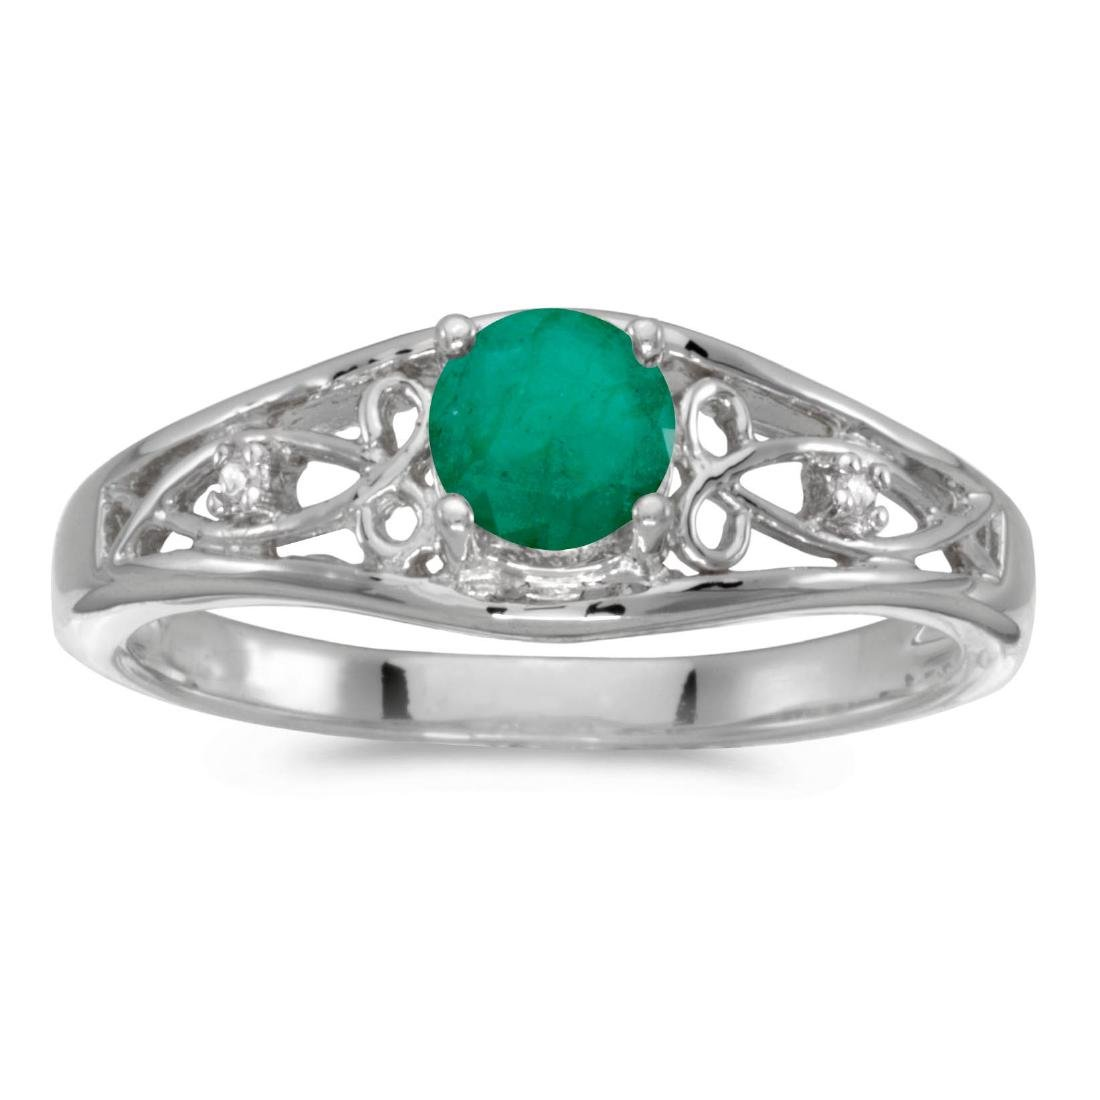 Certified 10k White Gold Round Emerald And Diamond Ring